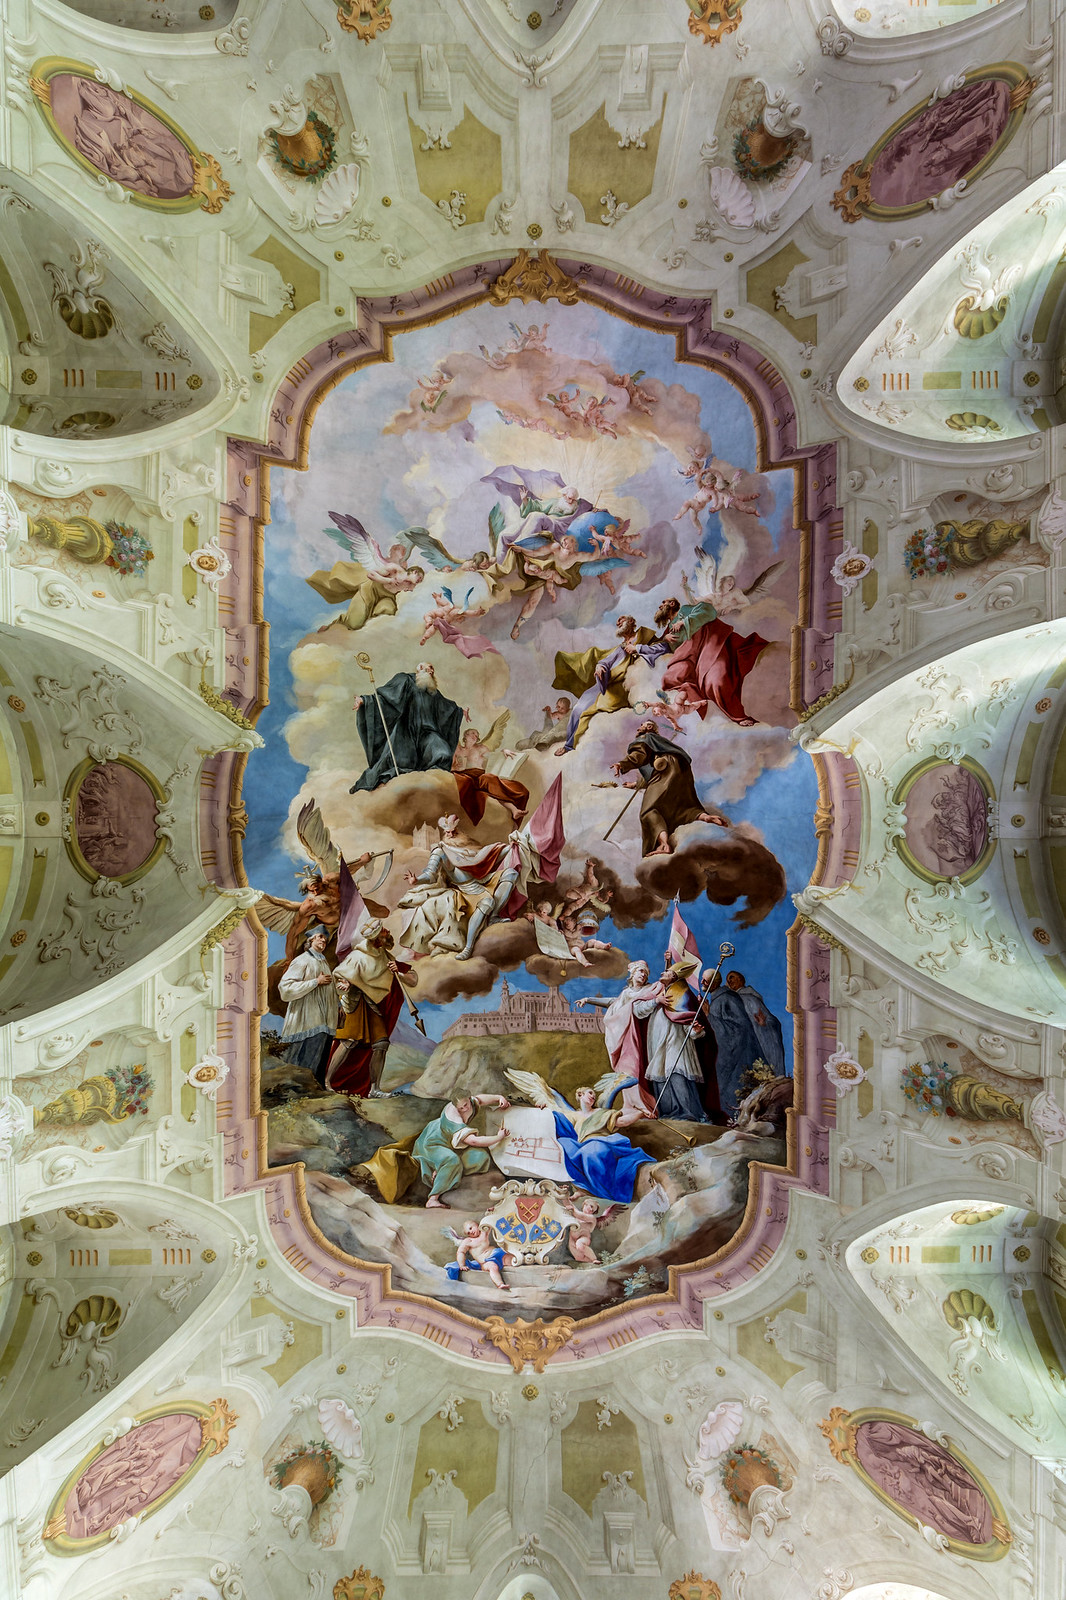 Symbolic illustration of the history of Melk Abbey, 1745. Credit Uoaei1